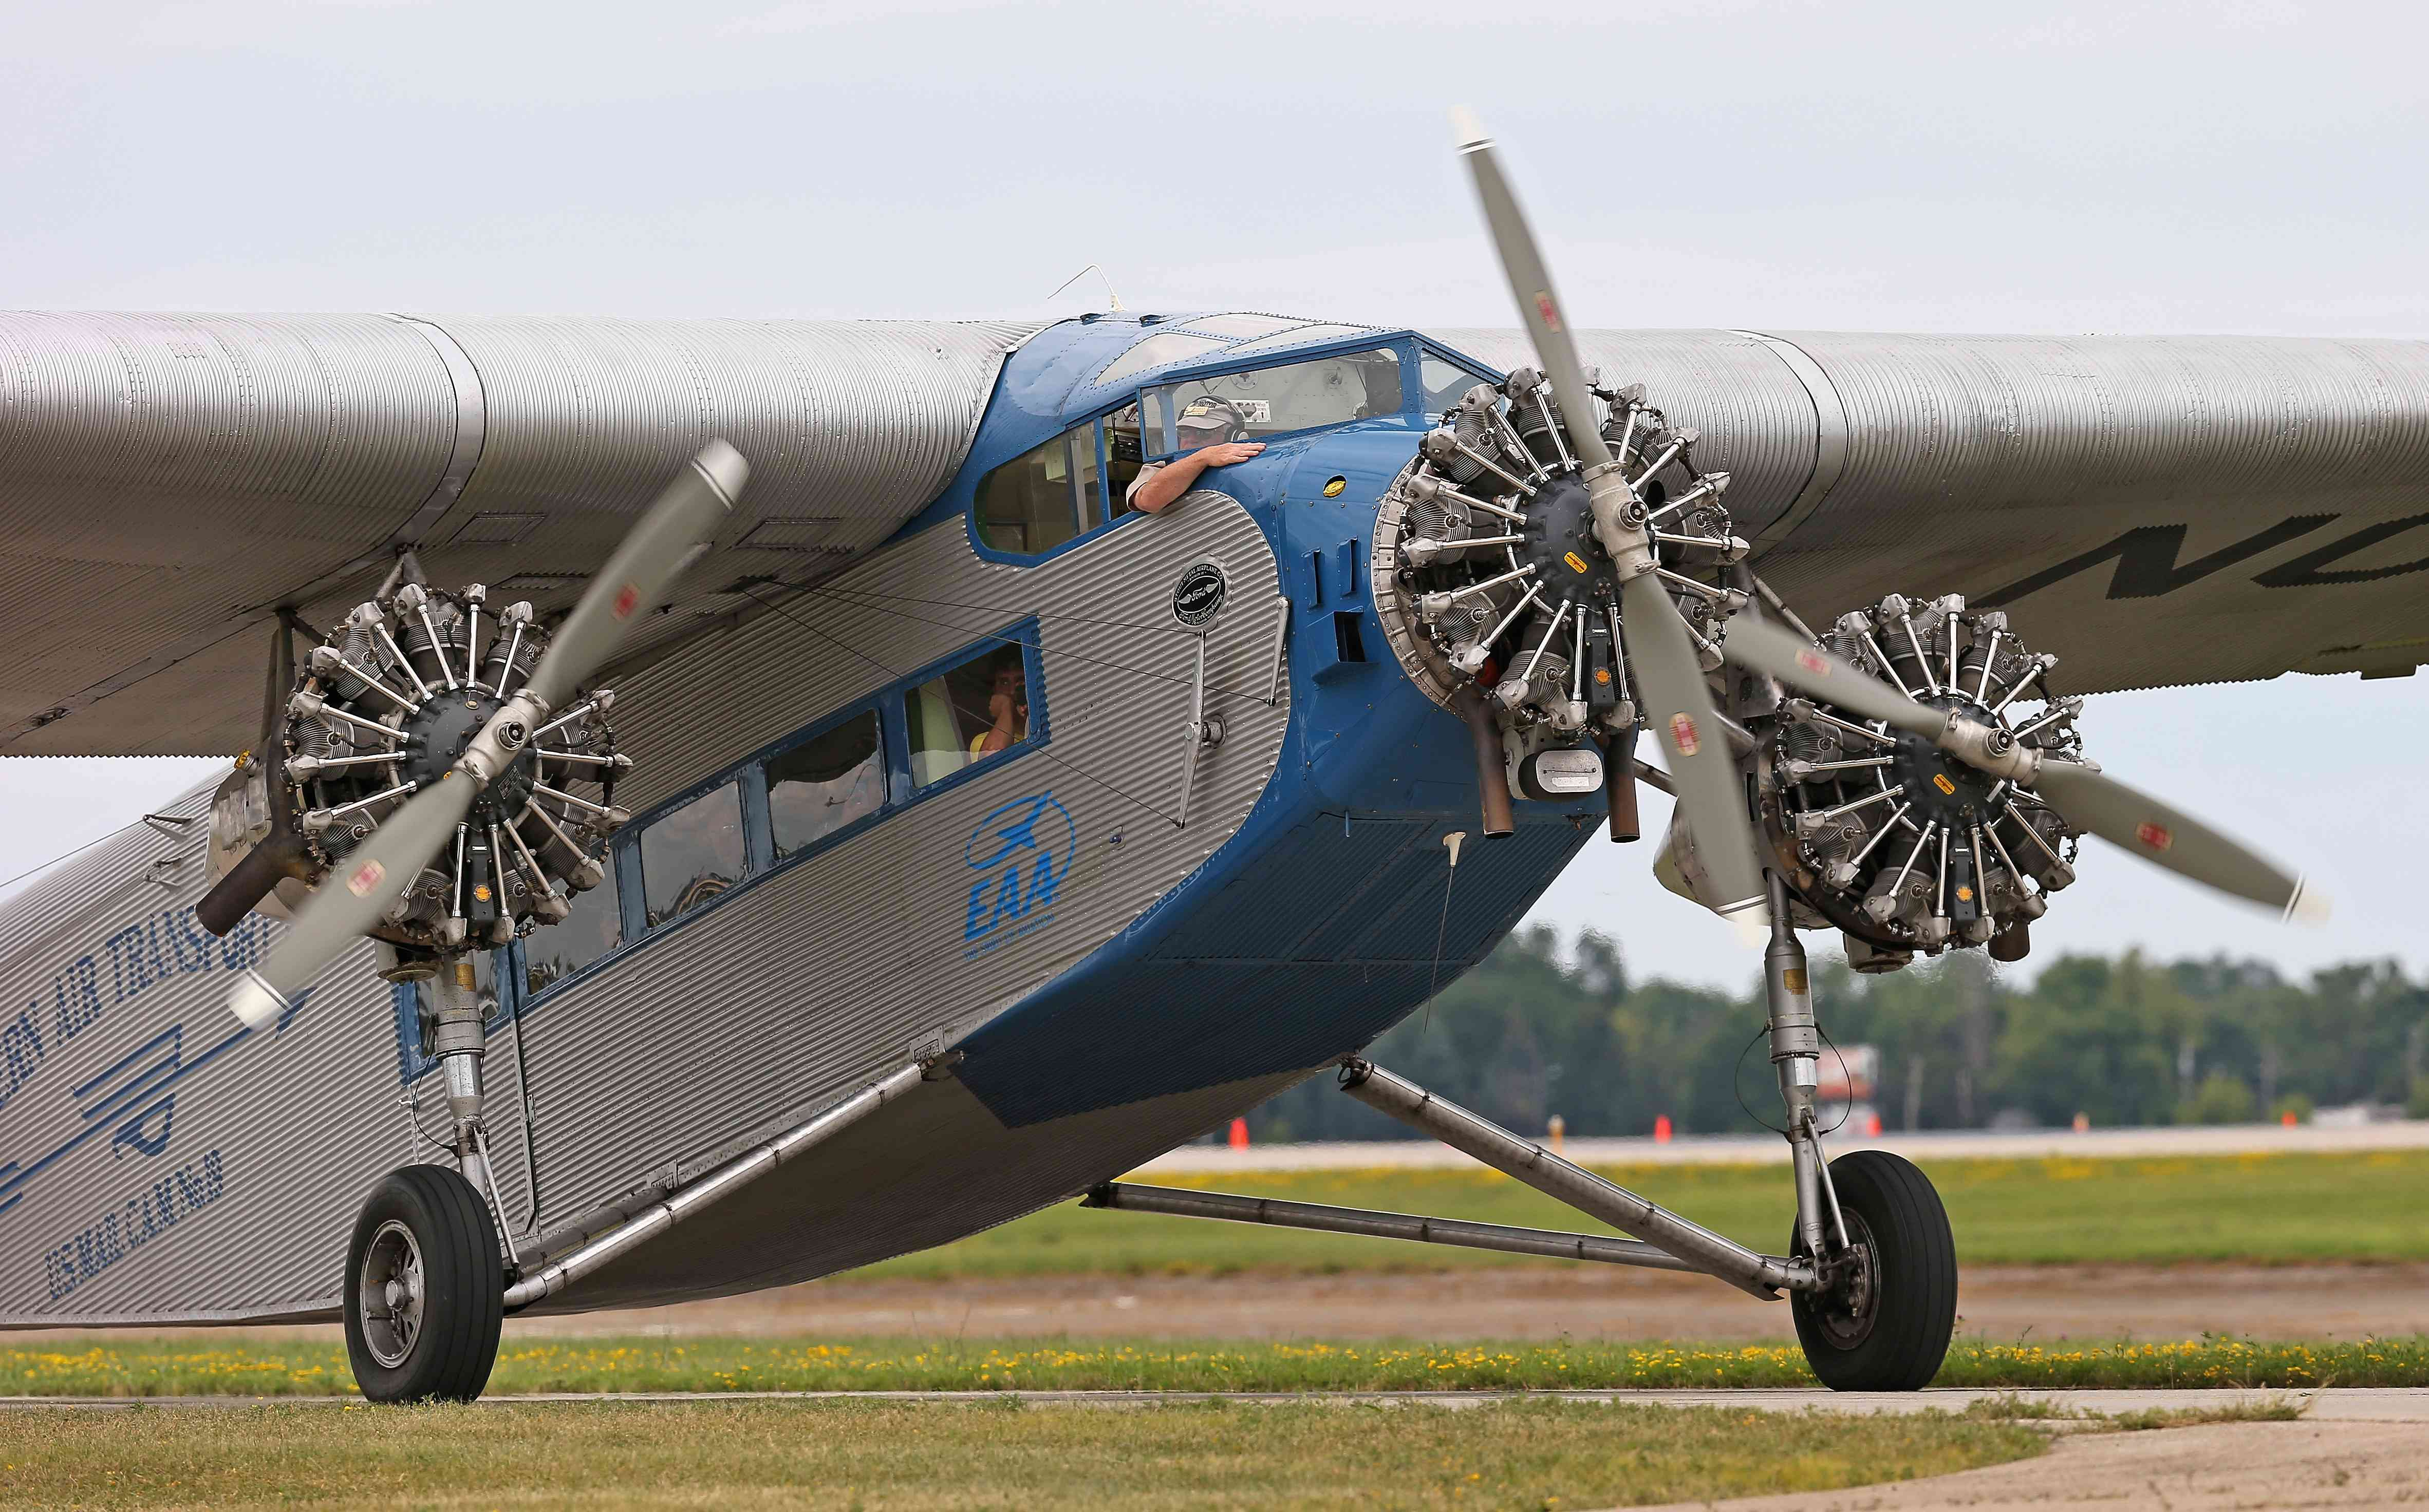 A 1930's era Ford Tri-Motor taxis at the Experimental Aircraft Association AirVenture 2013.